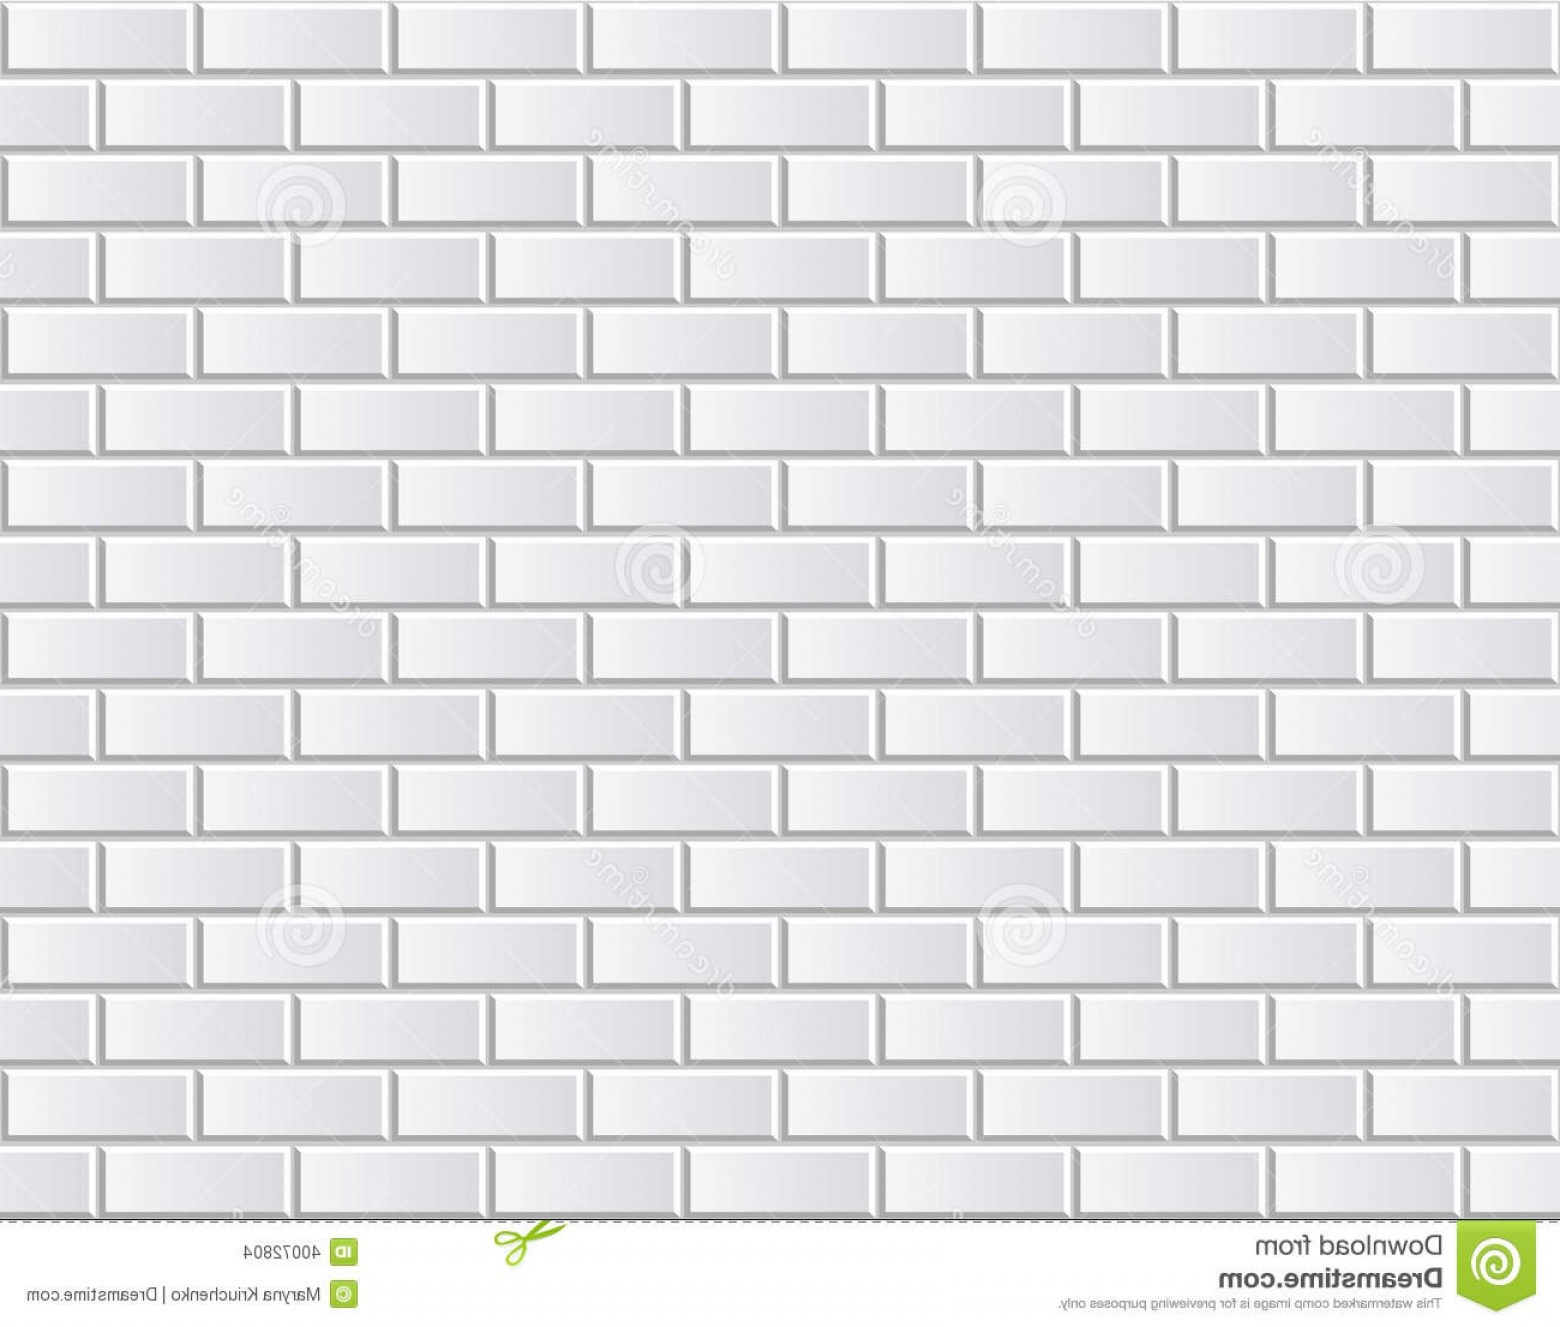 Wall Background Vector: Stock Images Seamless Vector White Brick Wall Background Pattern Illustration Texture Continuous Replicate Image